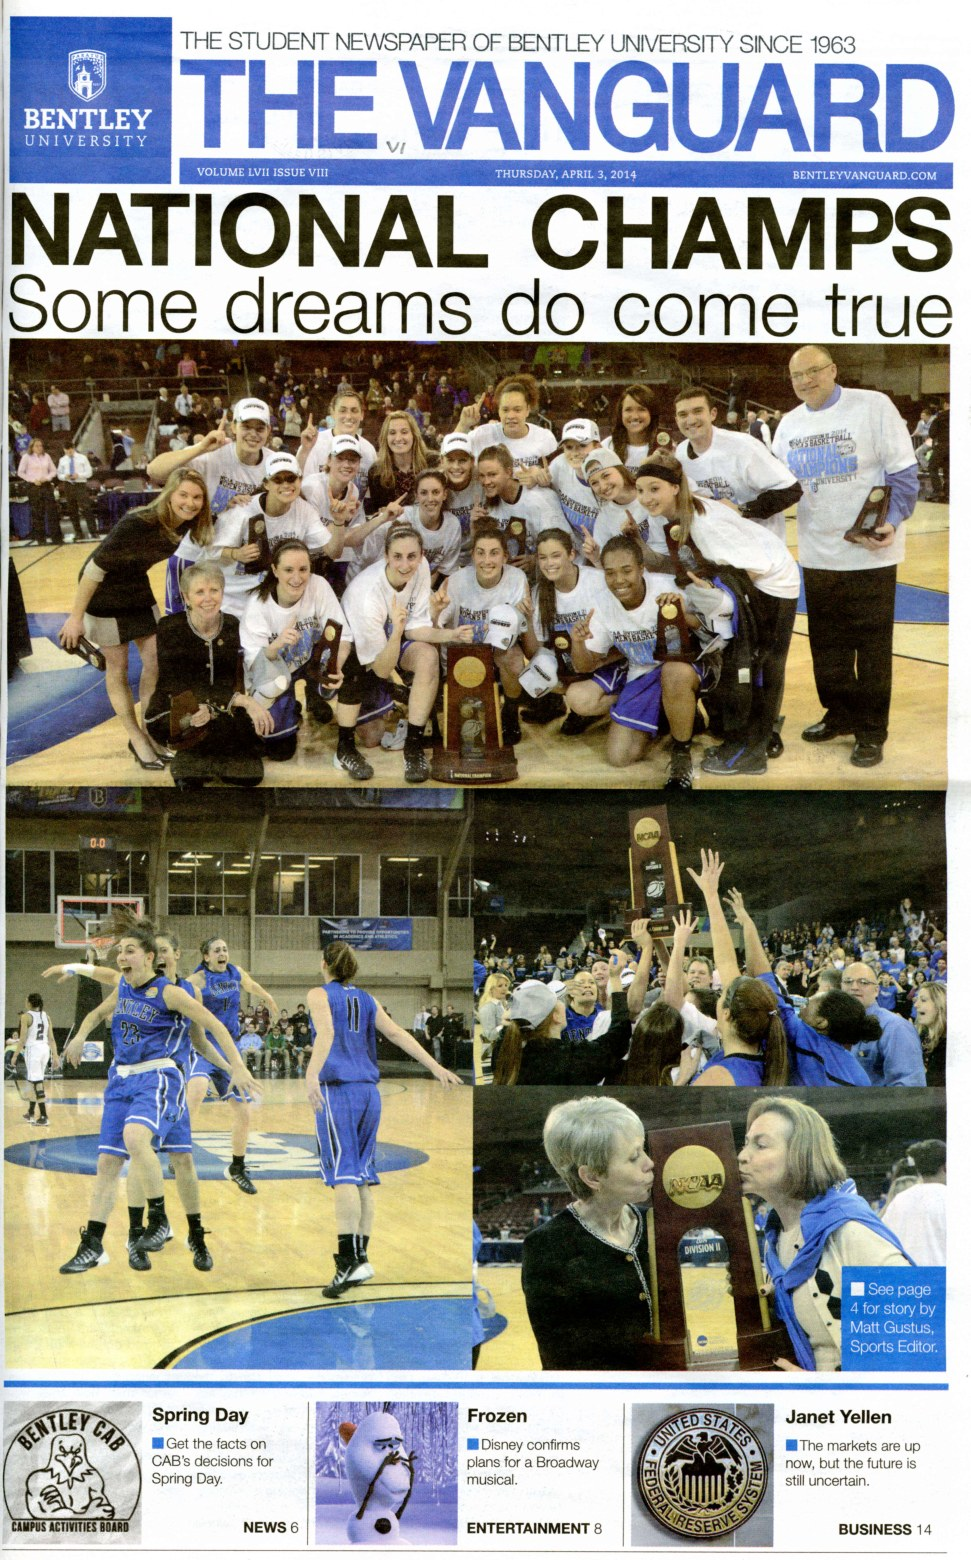 Athletics_Basketball_W_Champs_2014_smallerjpg